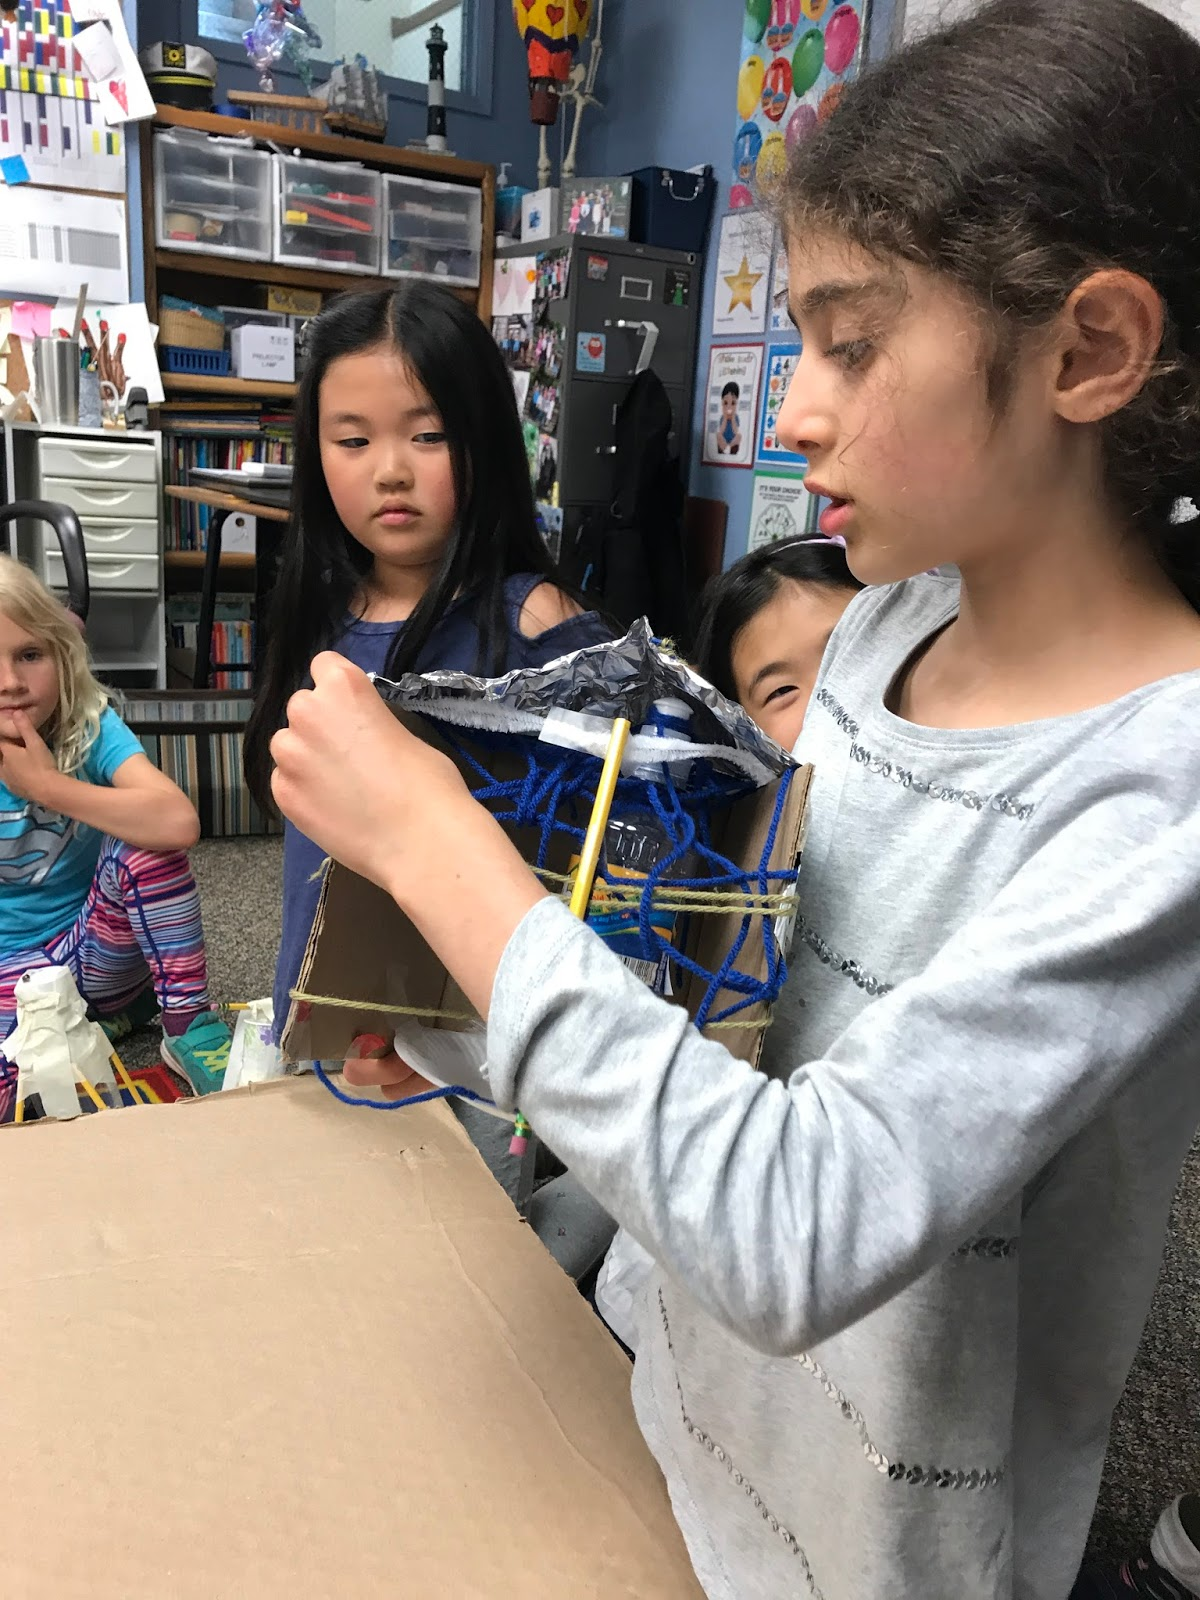 Earthquake Proof House >> SEABURY NAVIGATORSArchives: STEM MISSION: BUILD AN EARTHQUAKE PROOF BUILDING